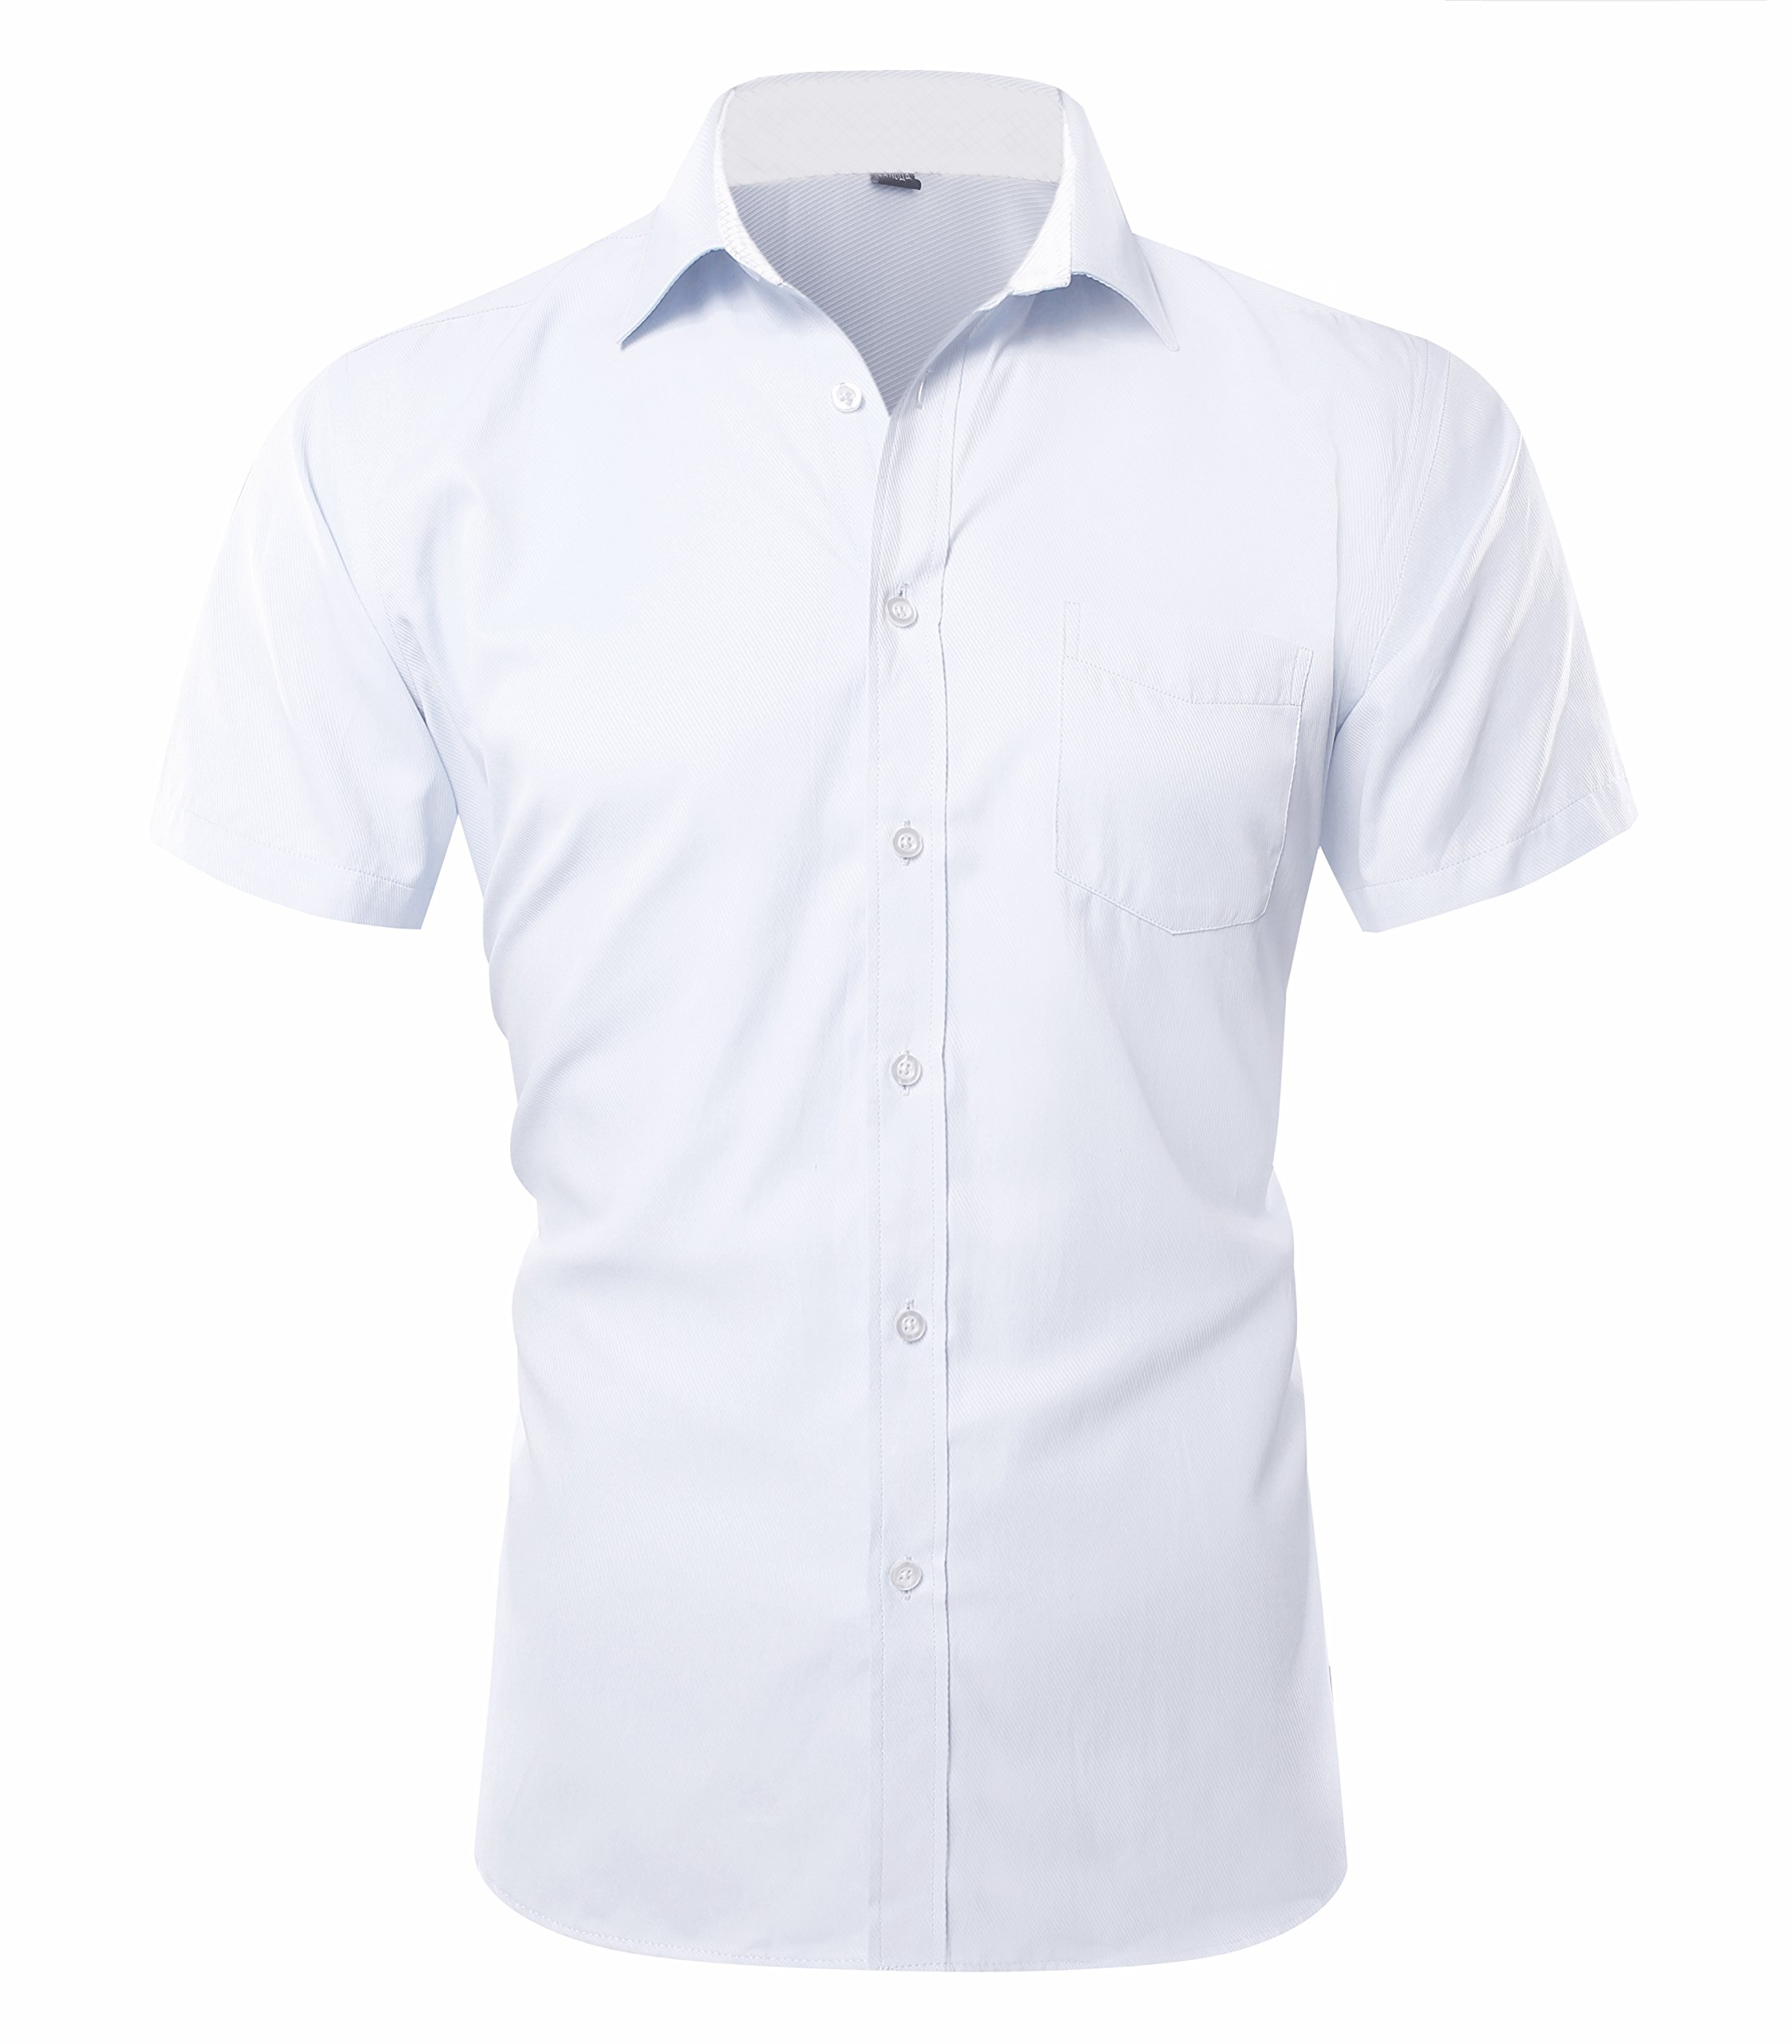 Musen Men Short Sleeve Dress Shirt Slim Fit Solid Shirts with Pocket White 41